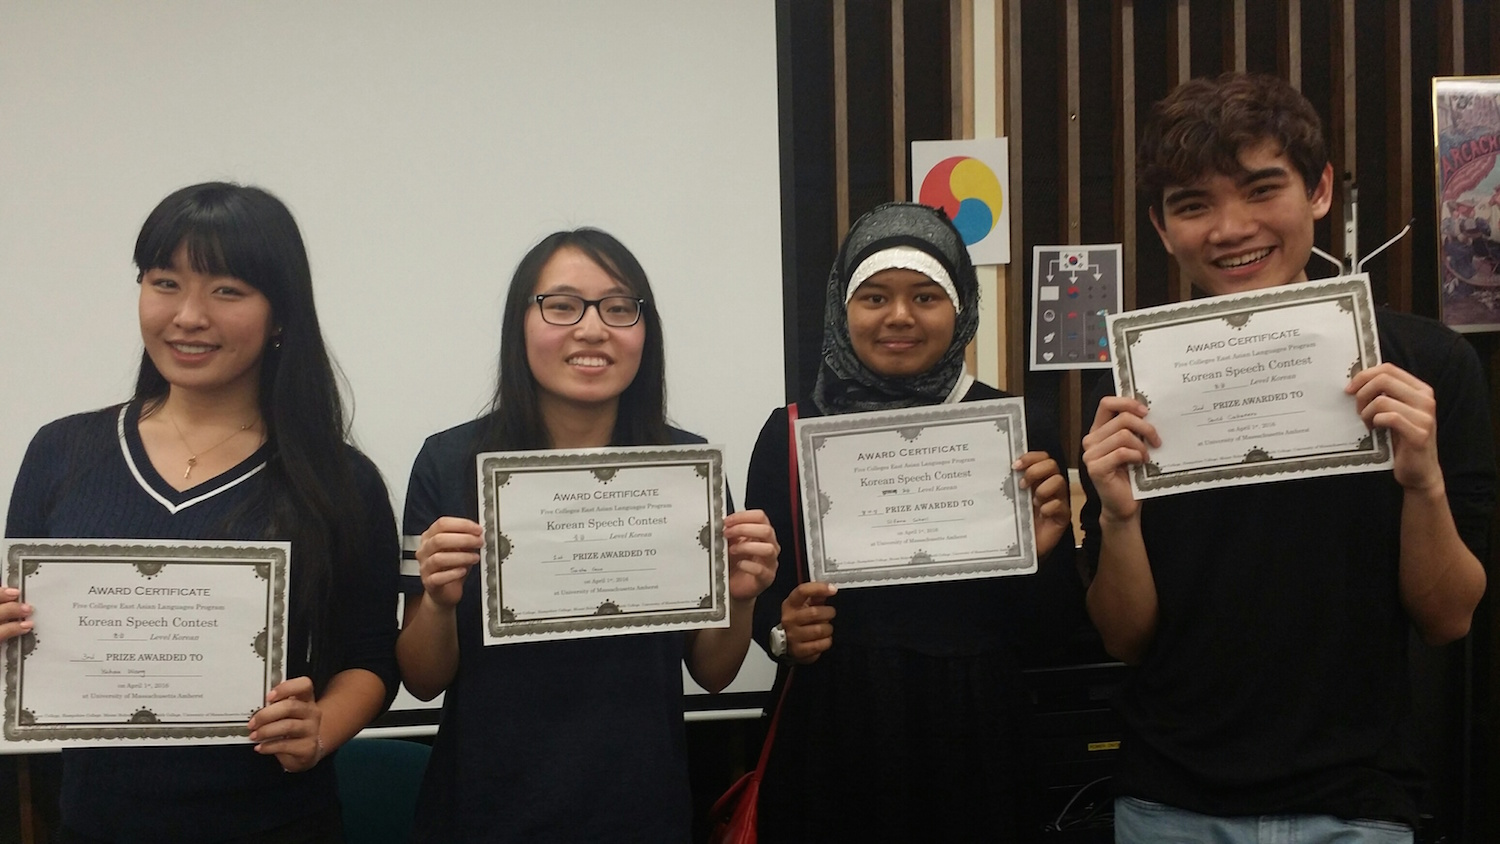 Wesleyan students Yuhan Wang '19, Sasha Guo '18, Sifana Sohail '18, and David Cabanero '19 participated in the Five College Korean Speech Contest on April 1.